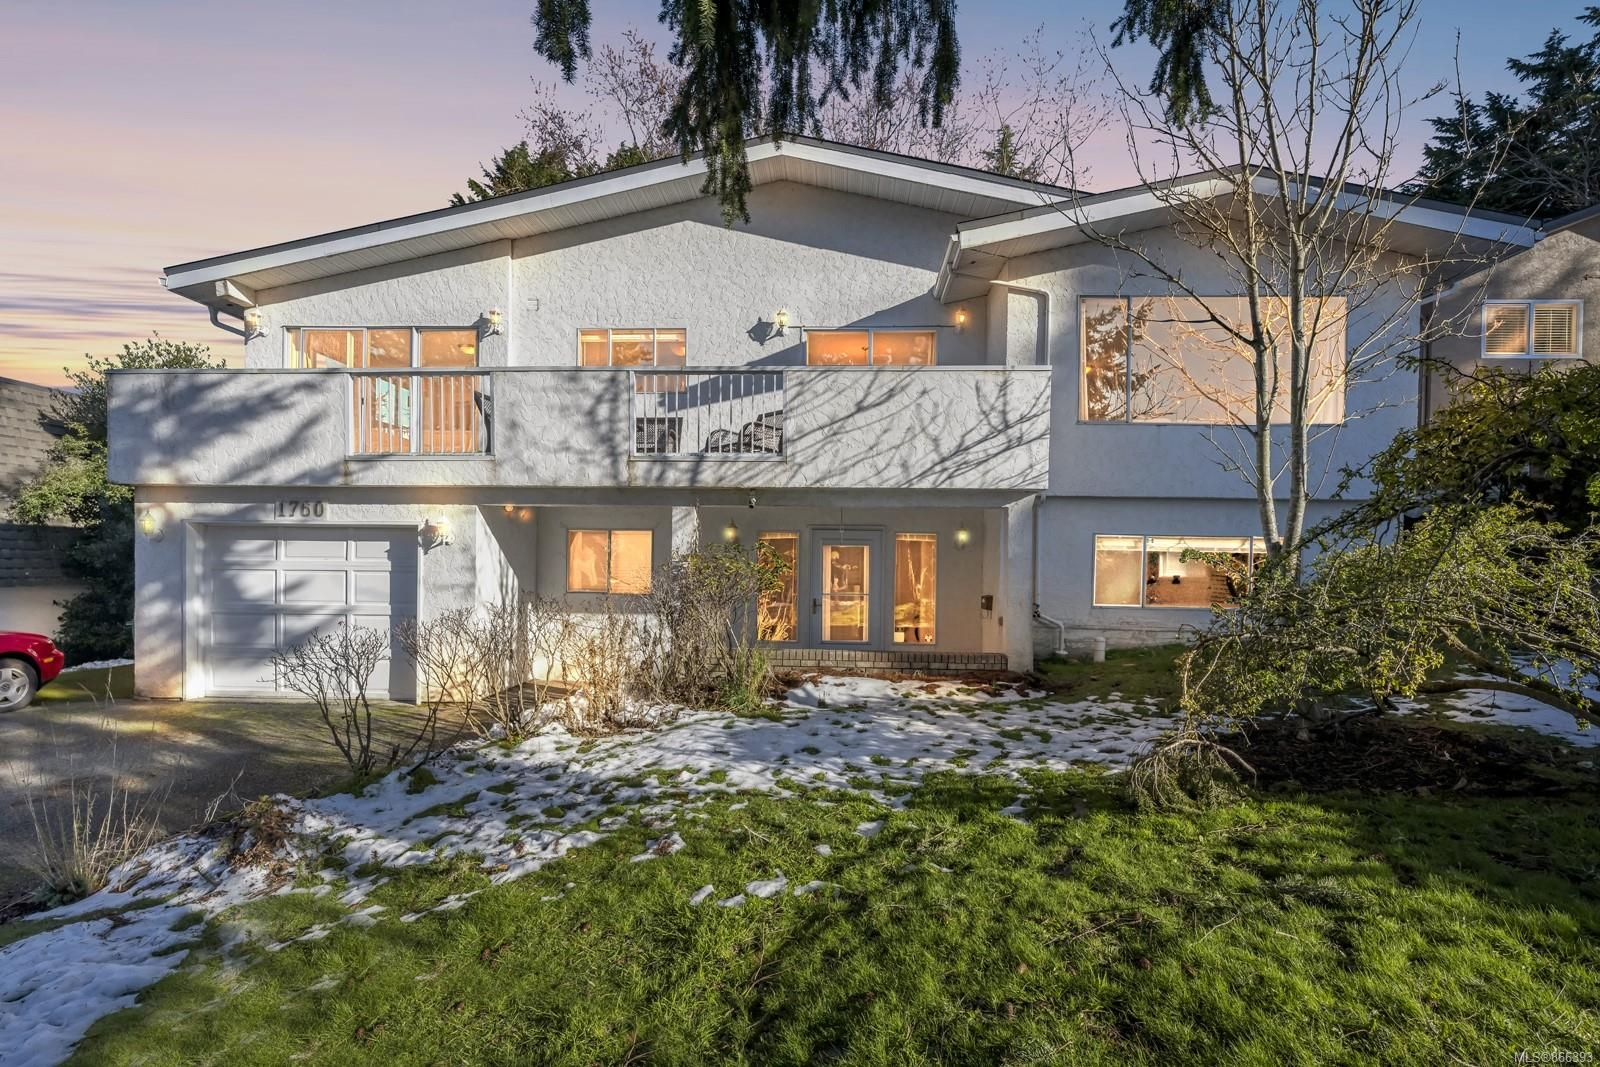 Main Photo: 1760 Triest Cres in : SE Gordon Head House for sale (Saanich East)  : MLS®# 866393